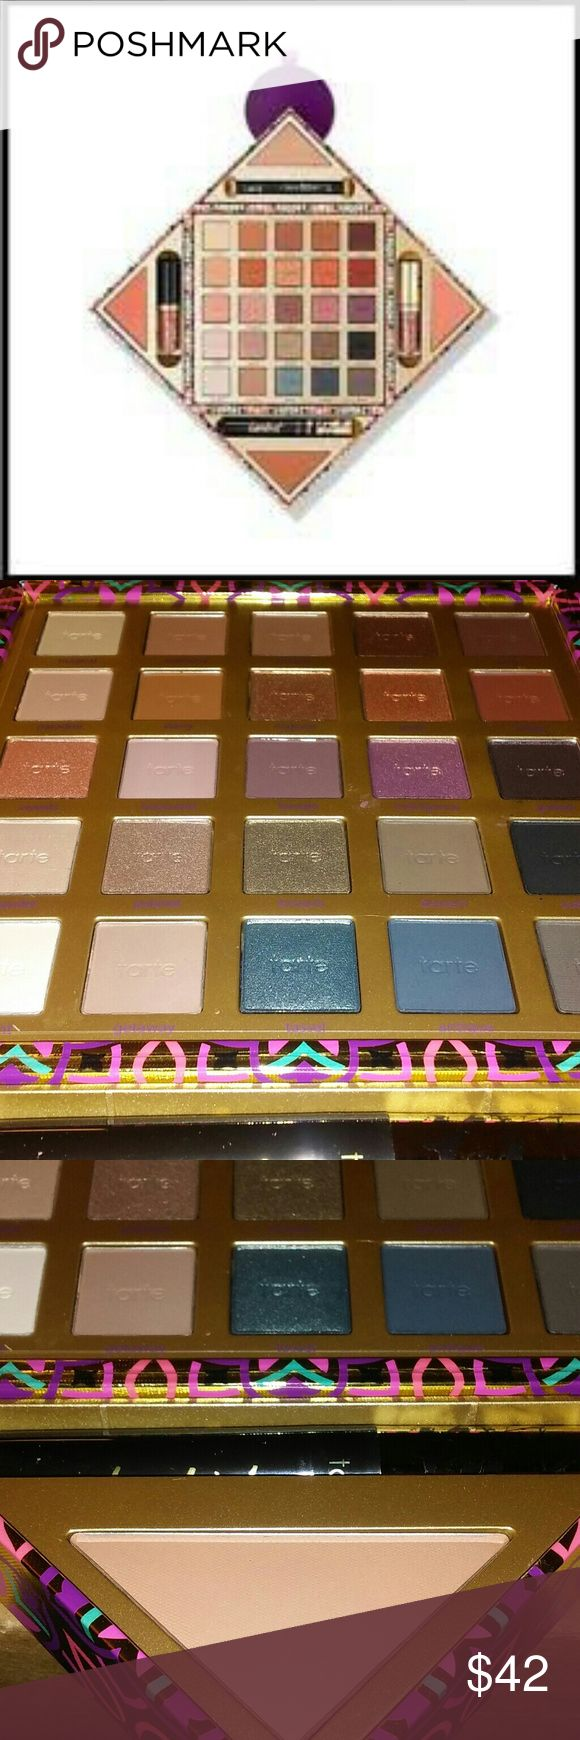 BNIB LE Tarte Magic Star Holiday Collectors Set! Brand new, never swatched nor used, BNIB LE Tarte Cosmetics Magic Star Collector's Set for Holidays 2017. Perfect for any season and travel!! Terrific Gift! Comes with receipt upon request. Guaranteed authentic or money back!  Please contact me with questions. No trades! No returns! Happy Shopping! Bundle to save $$$! Retail $49 plus taxes!  #tarte #holiday #blushbliss #blush #limitededition #authentic #buriedtreasure #eyeshadow #palette…